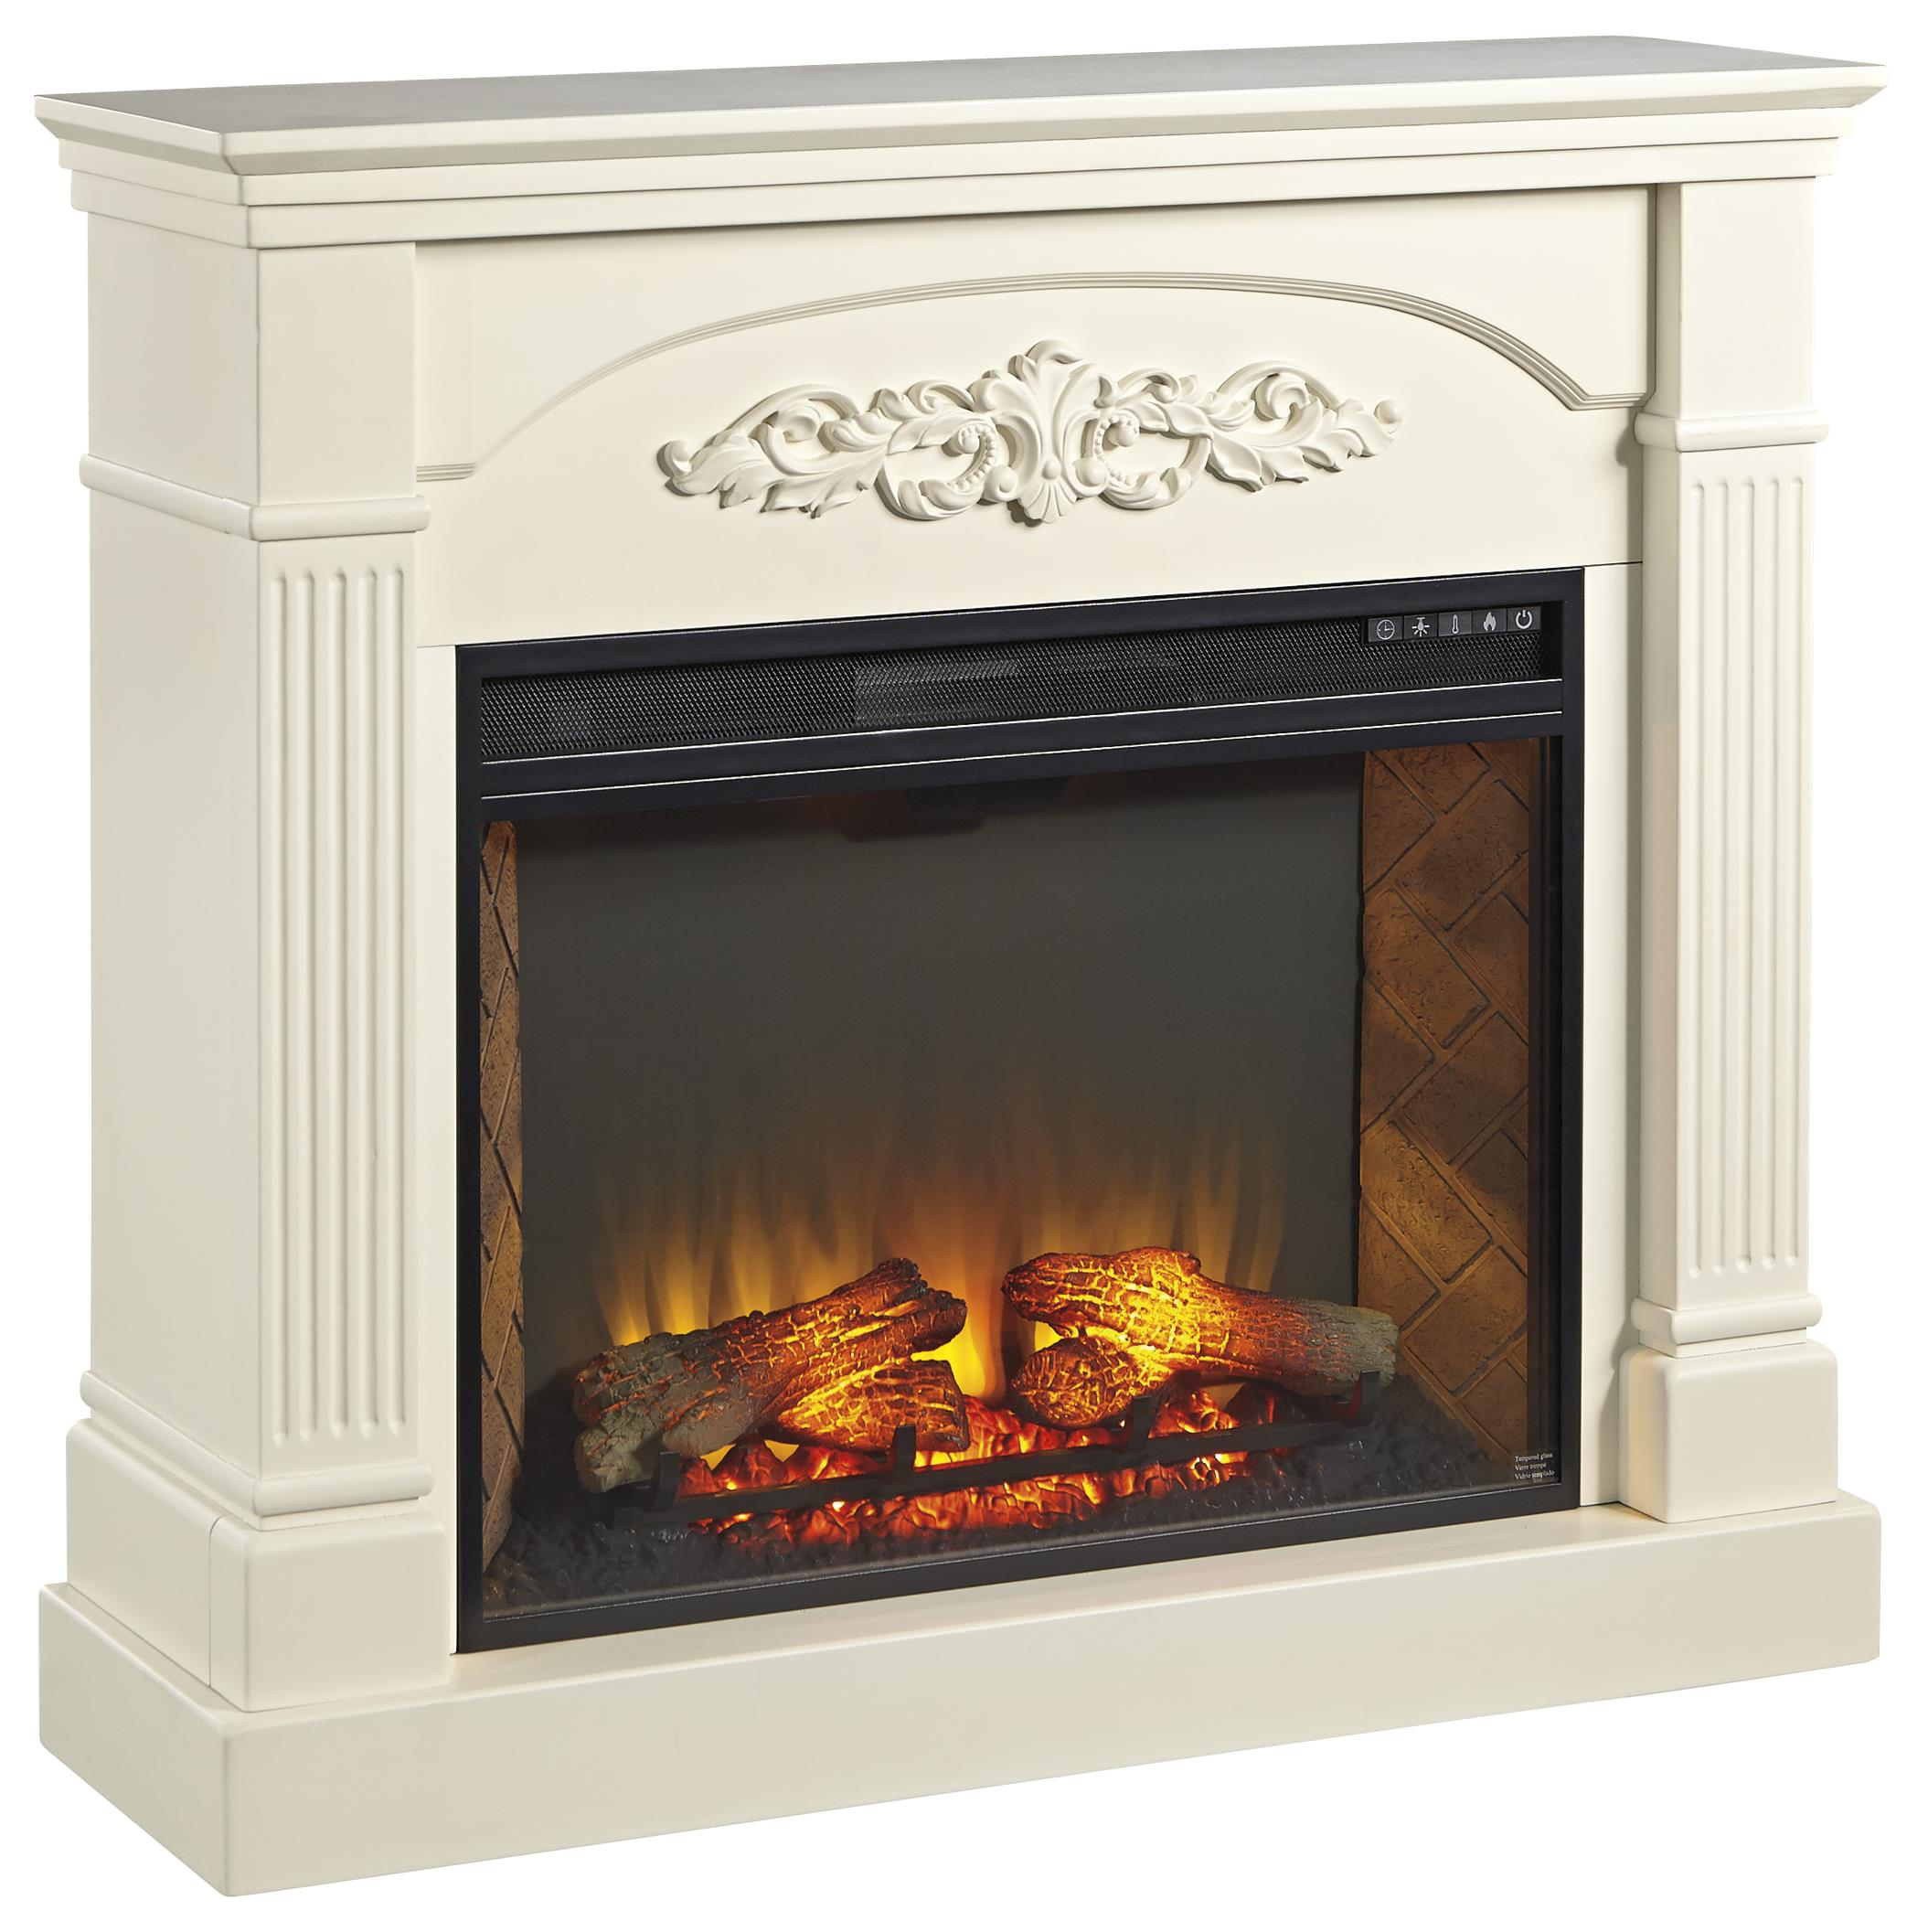 Signature Design by Ashley Boddew Fireplace Mantel - Item Number: W600-220